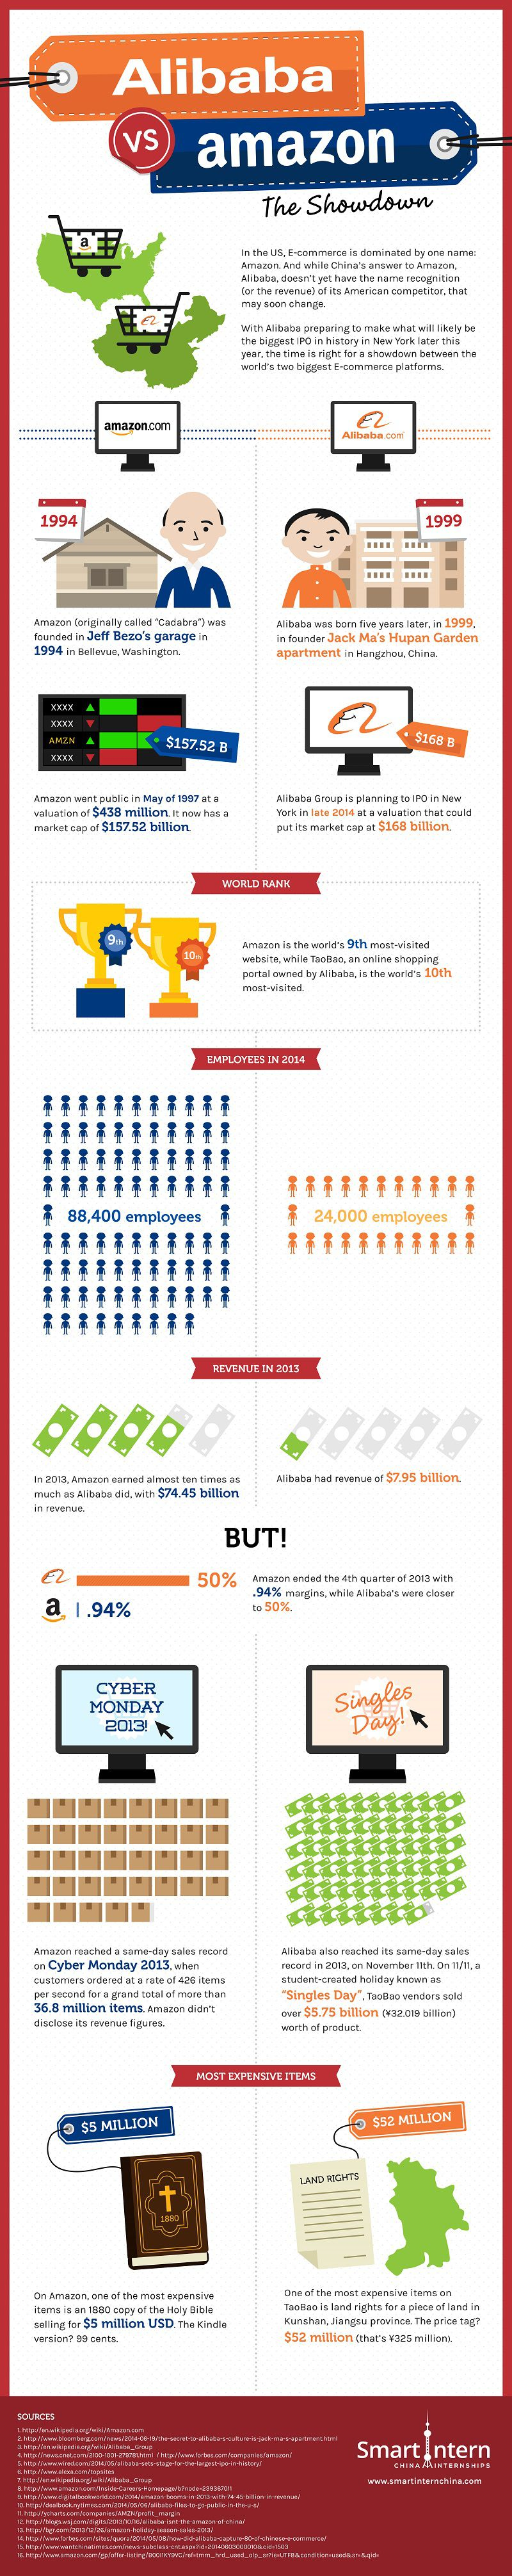 Alibaba_vs_amazon_infographic_small__reduced_high_res